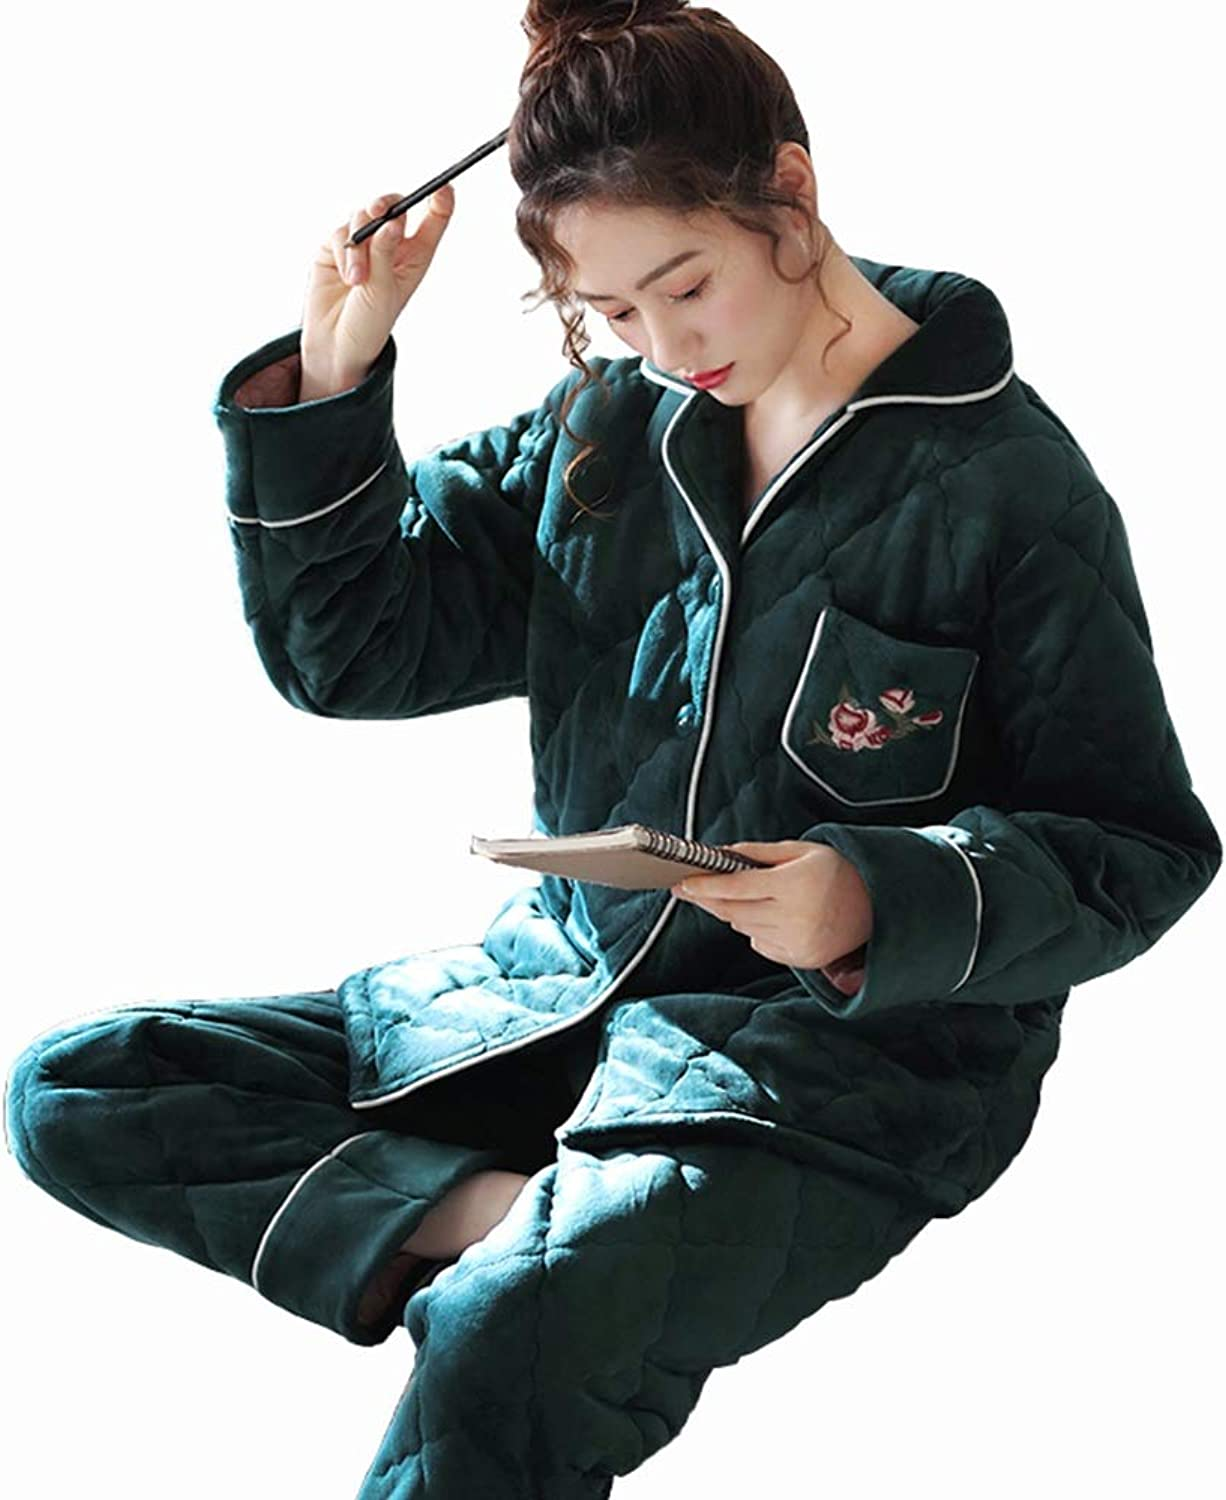 GWDJ Pajamas, Winter ThreeTier Thicken Keep Warm Pajamas Female Cotton Loose Splicing Edge Casual Home Clothing Set, Green, Purple (color   Green, Size   M)